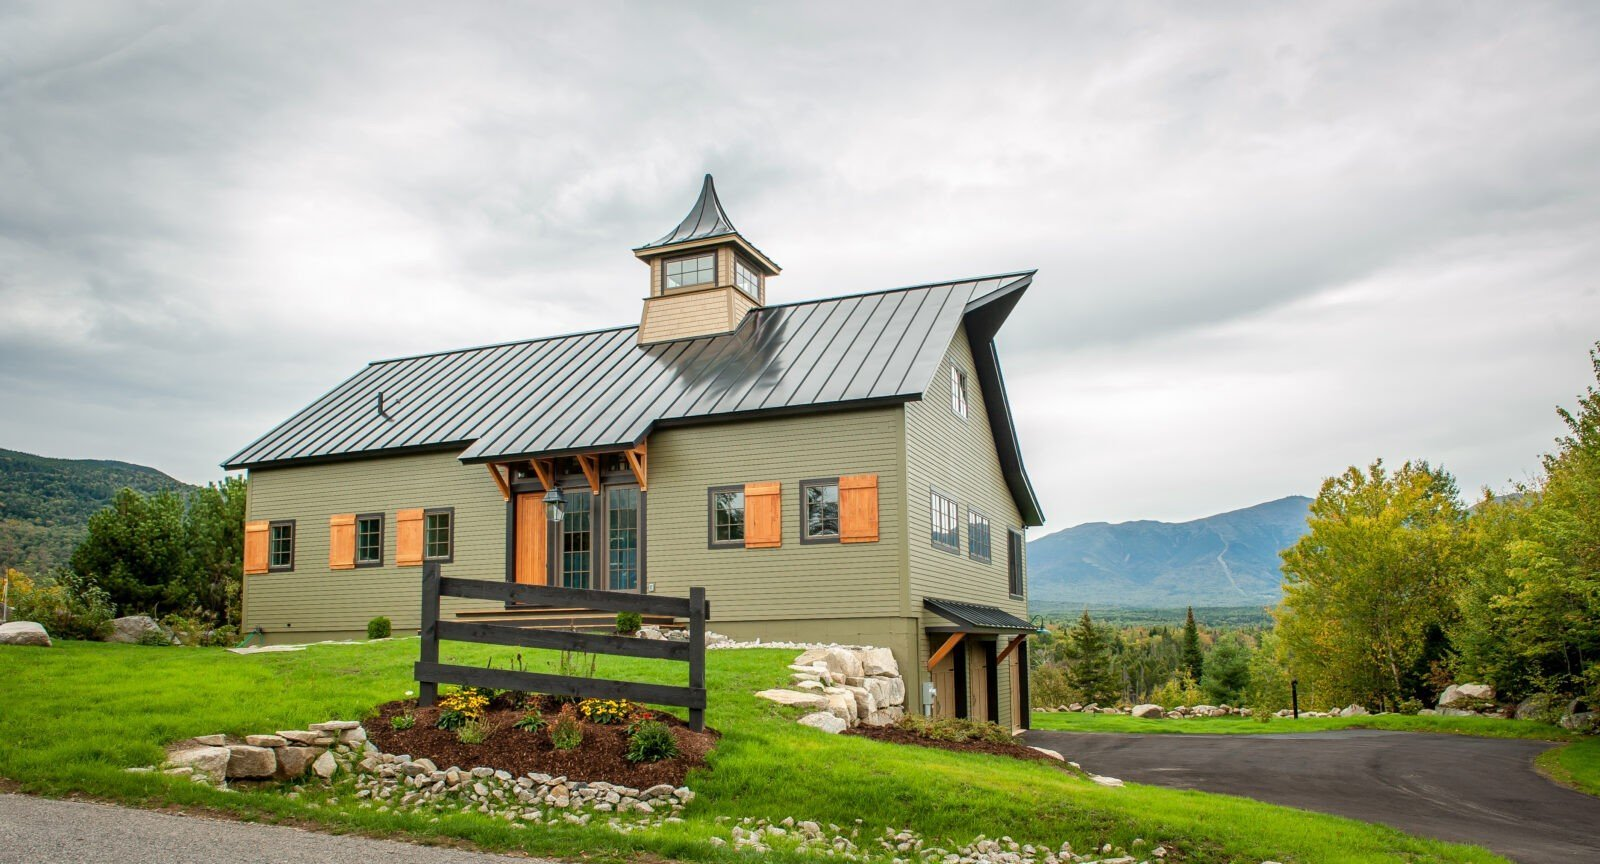 Top notch barn home plans from the ybh design team for Barn type house plans